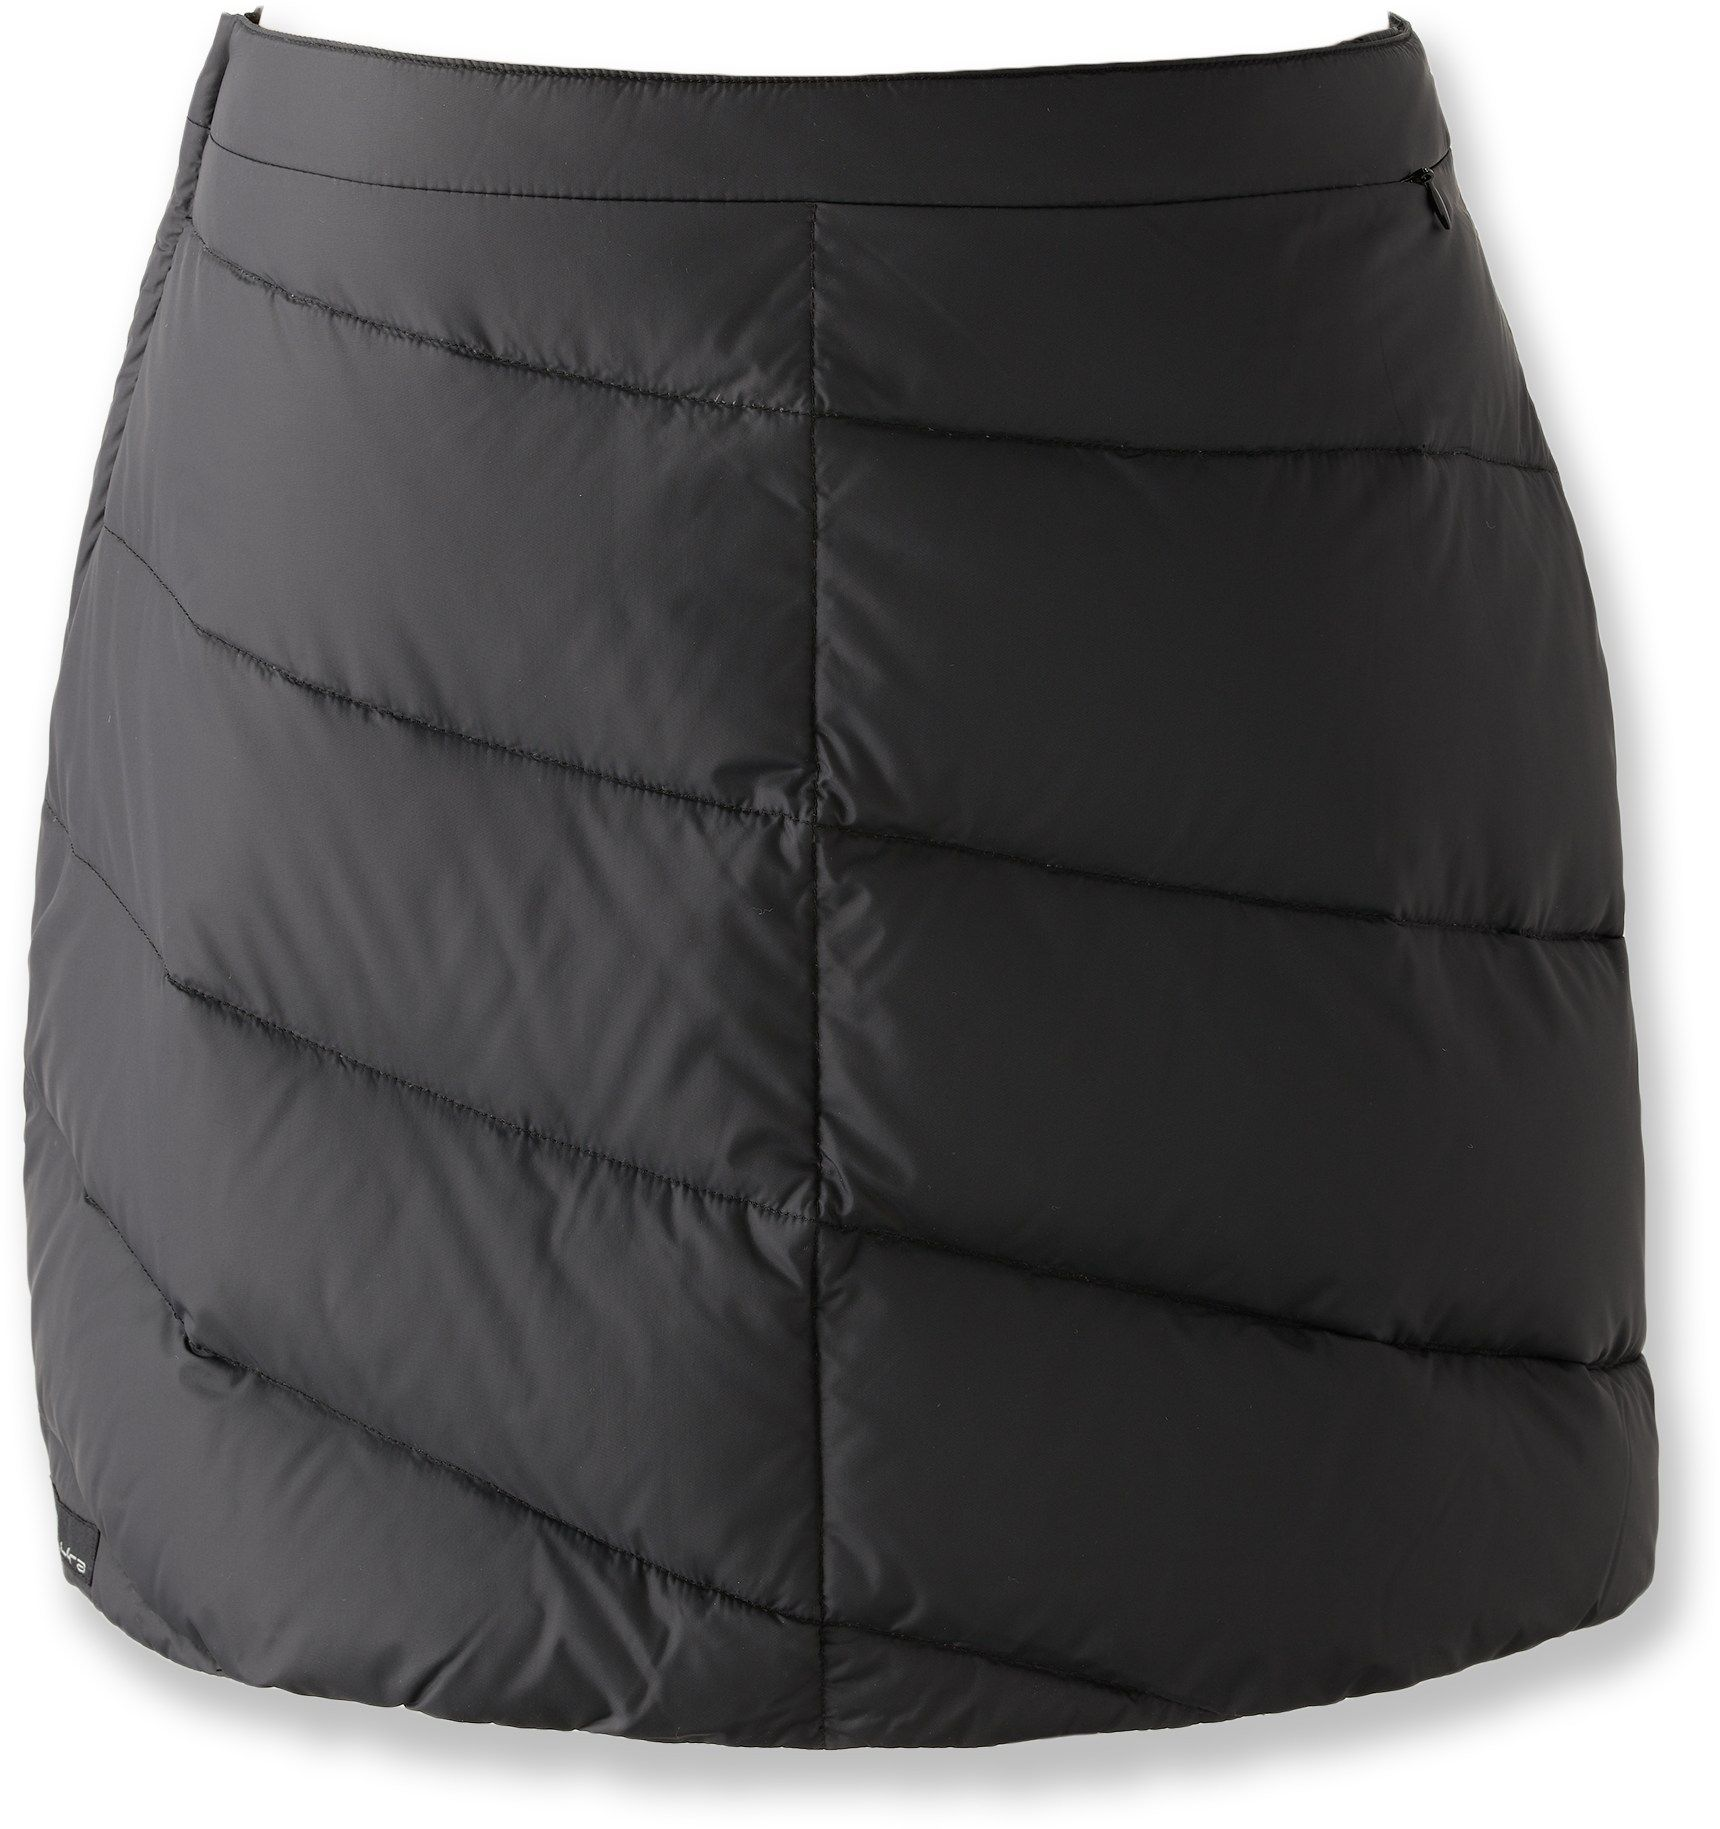 4a8dc5609 Cordillera Snow Flurry Down Skirt - Special Buy - Free Shipping at  REI-OUTLET.com